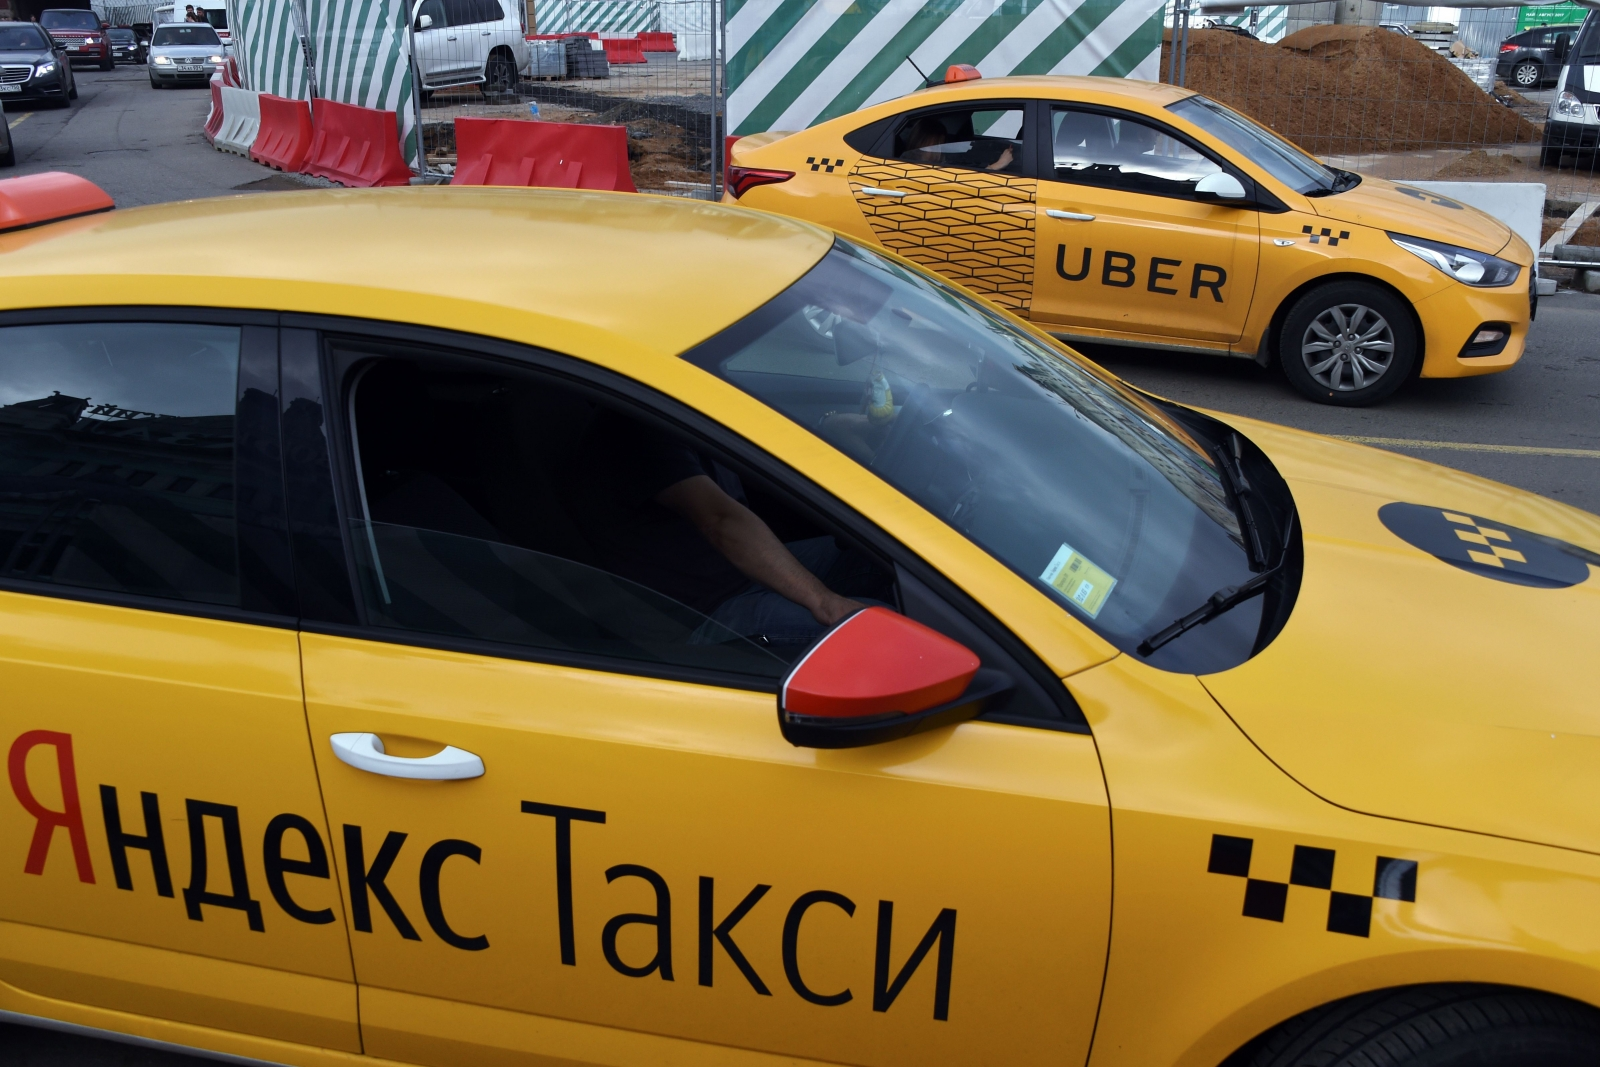 Russia's Yandex Takes Lion's Share of Uber Deal